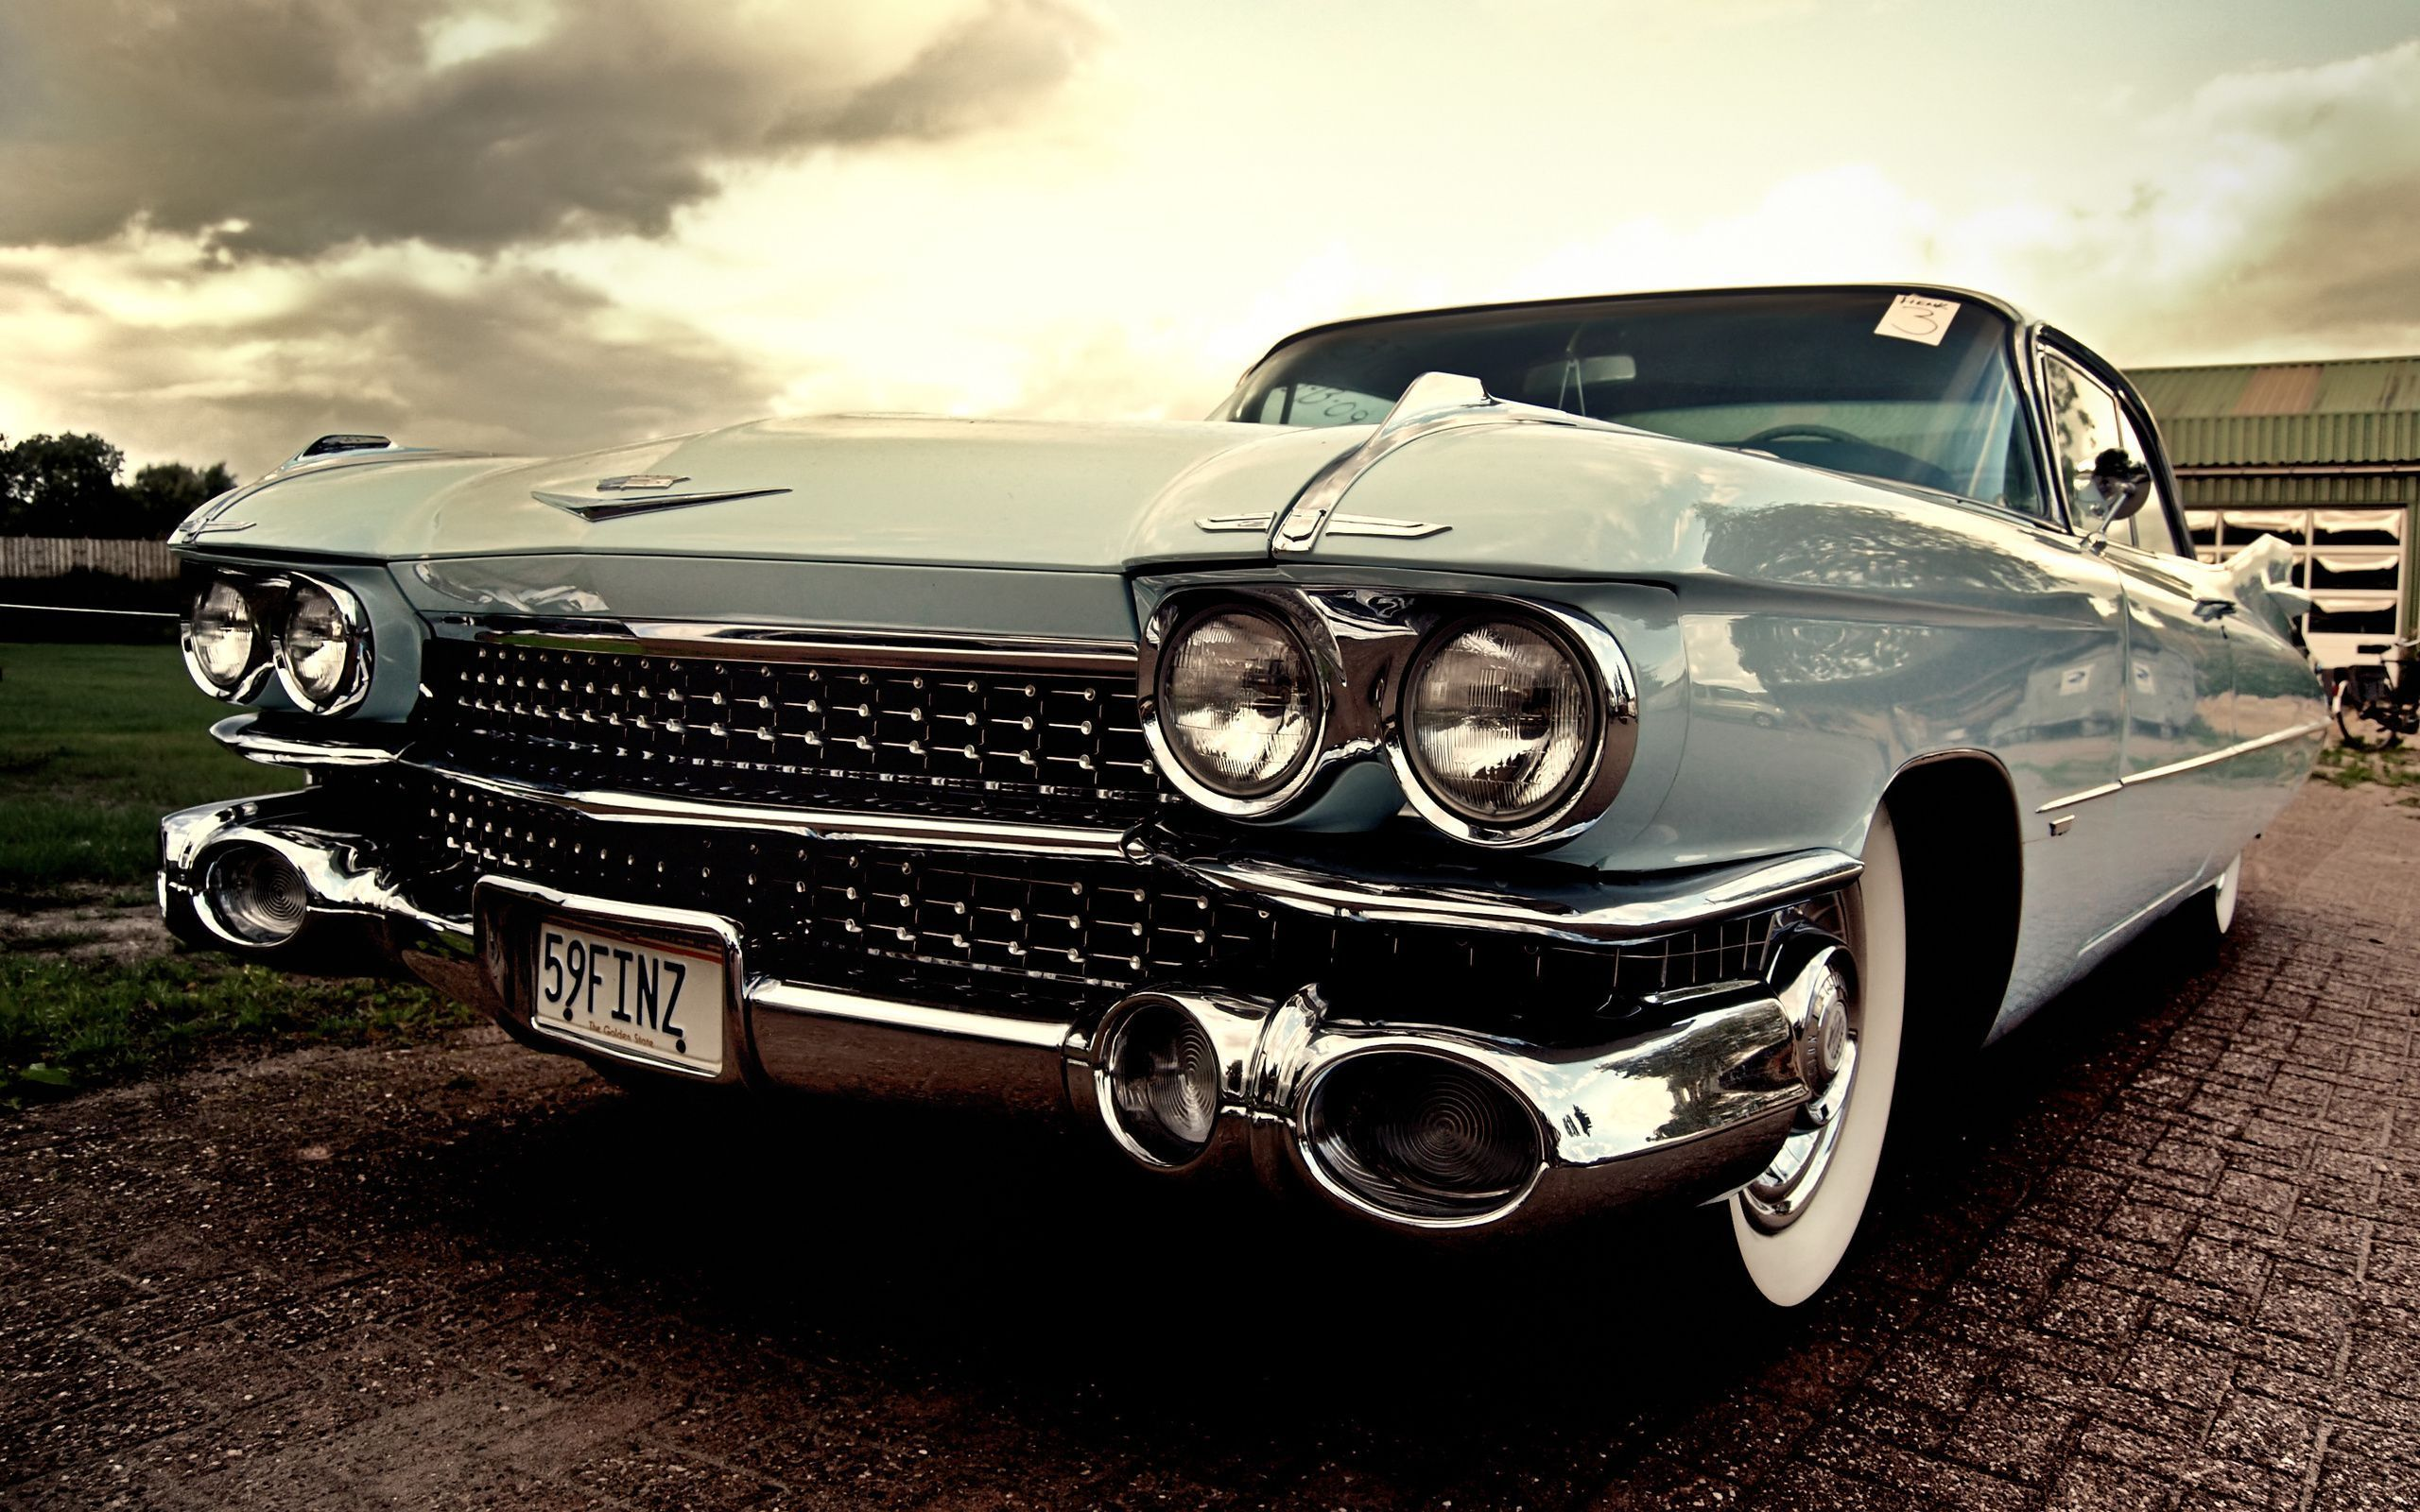 HD Wallpapers Of Vintage Cars